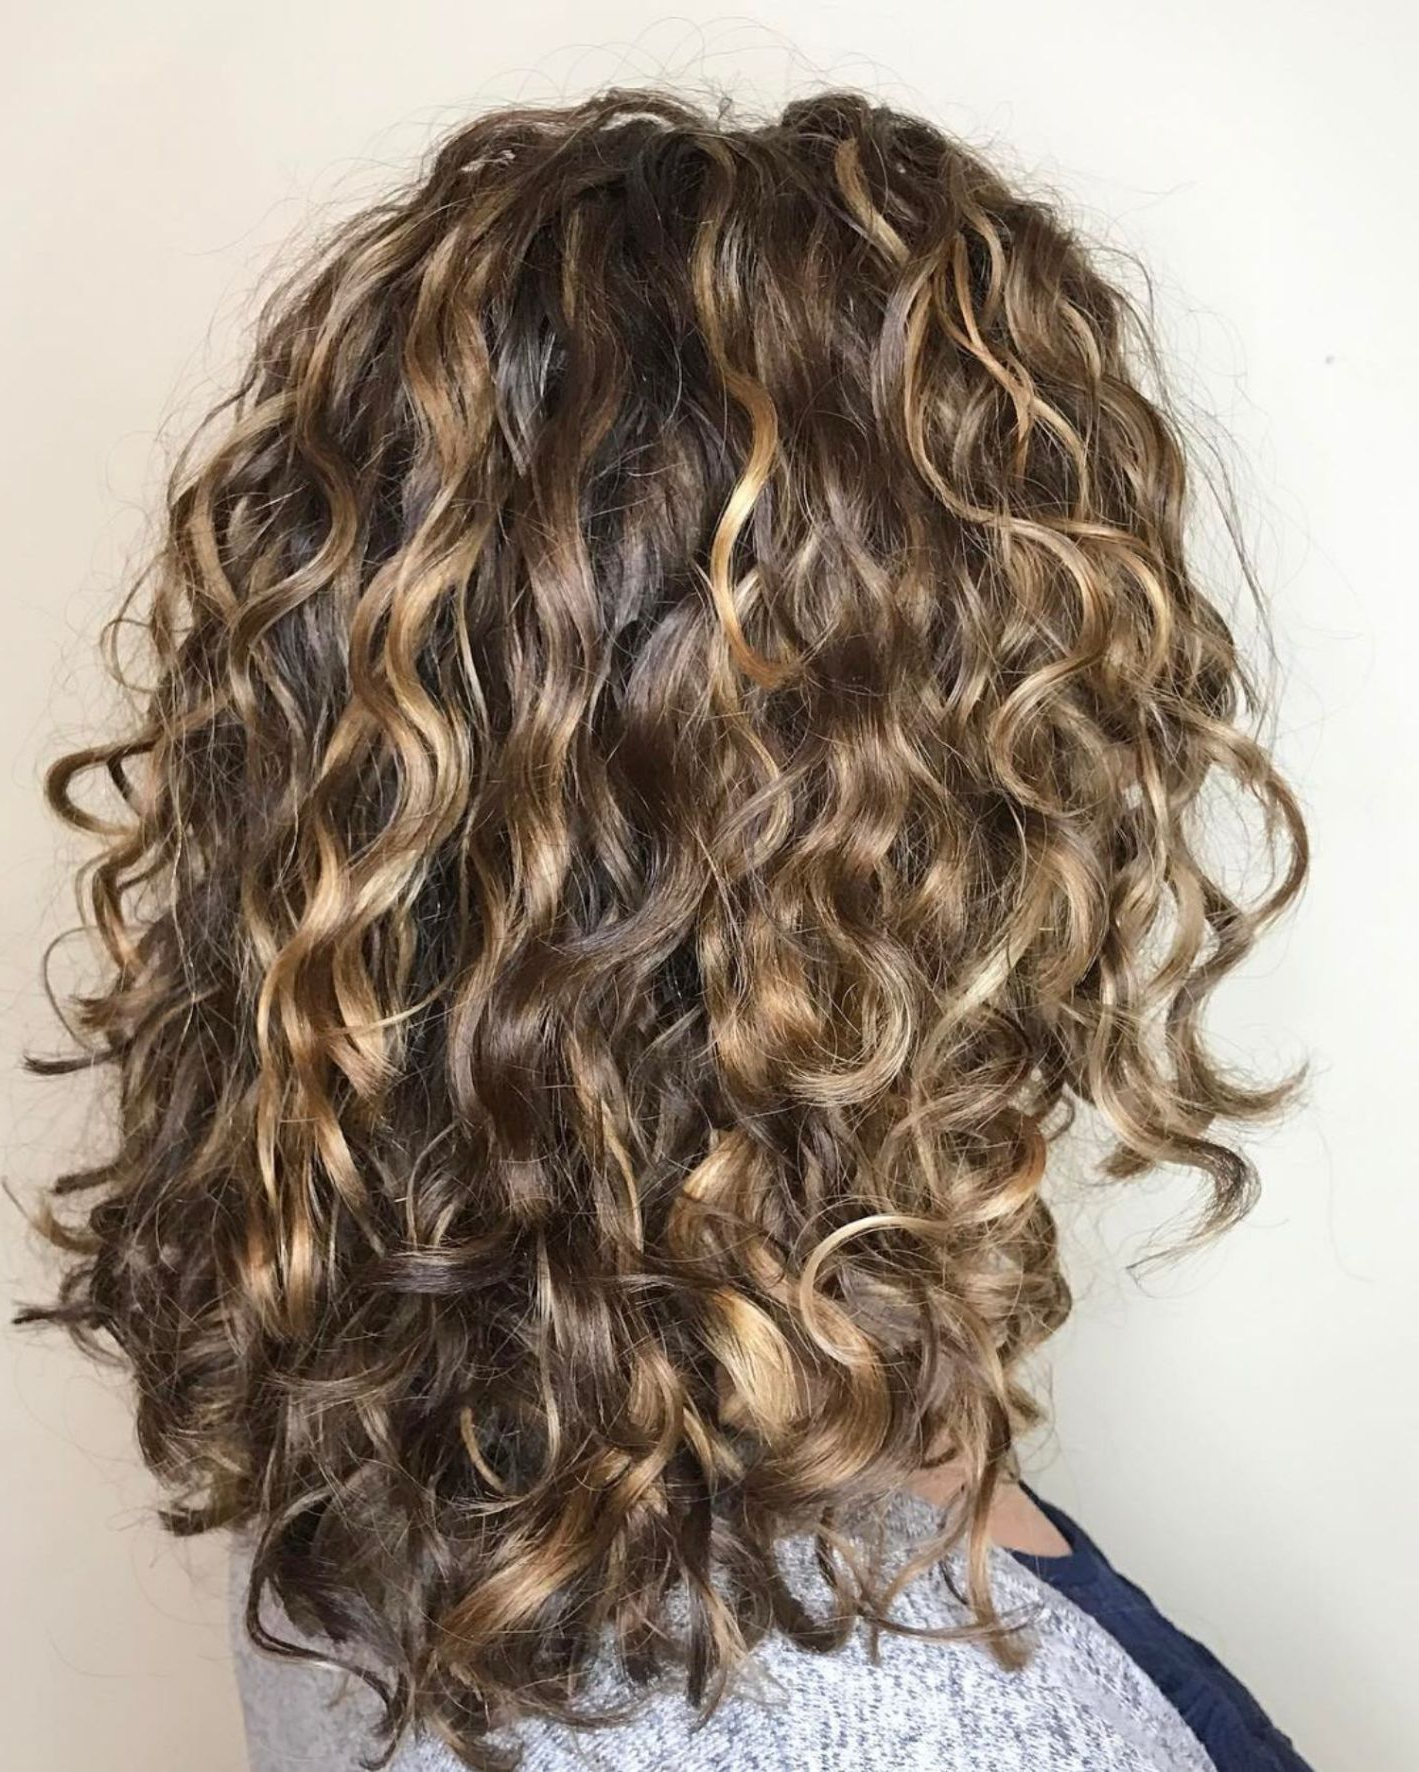 60 Styles And Cuts For Naturally Curly Hair | Hairstyles | Pinterest Within Brown Curly Hairstyles With Highlights (View 6 of 25)